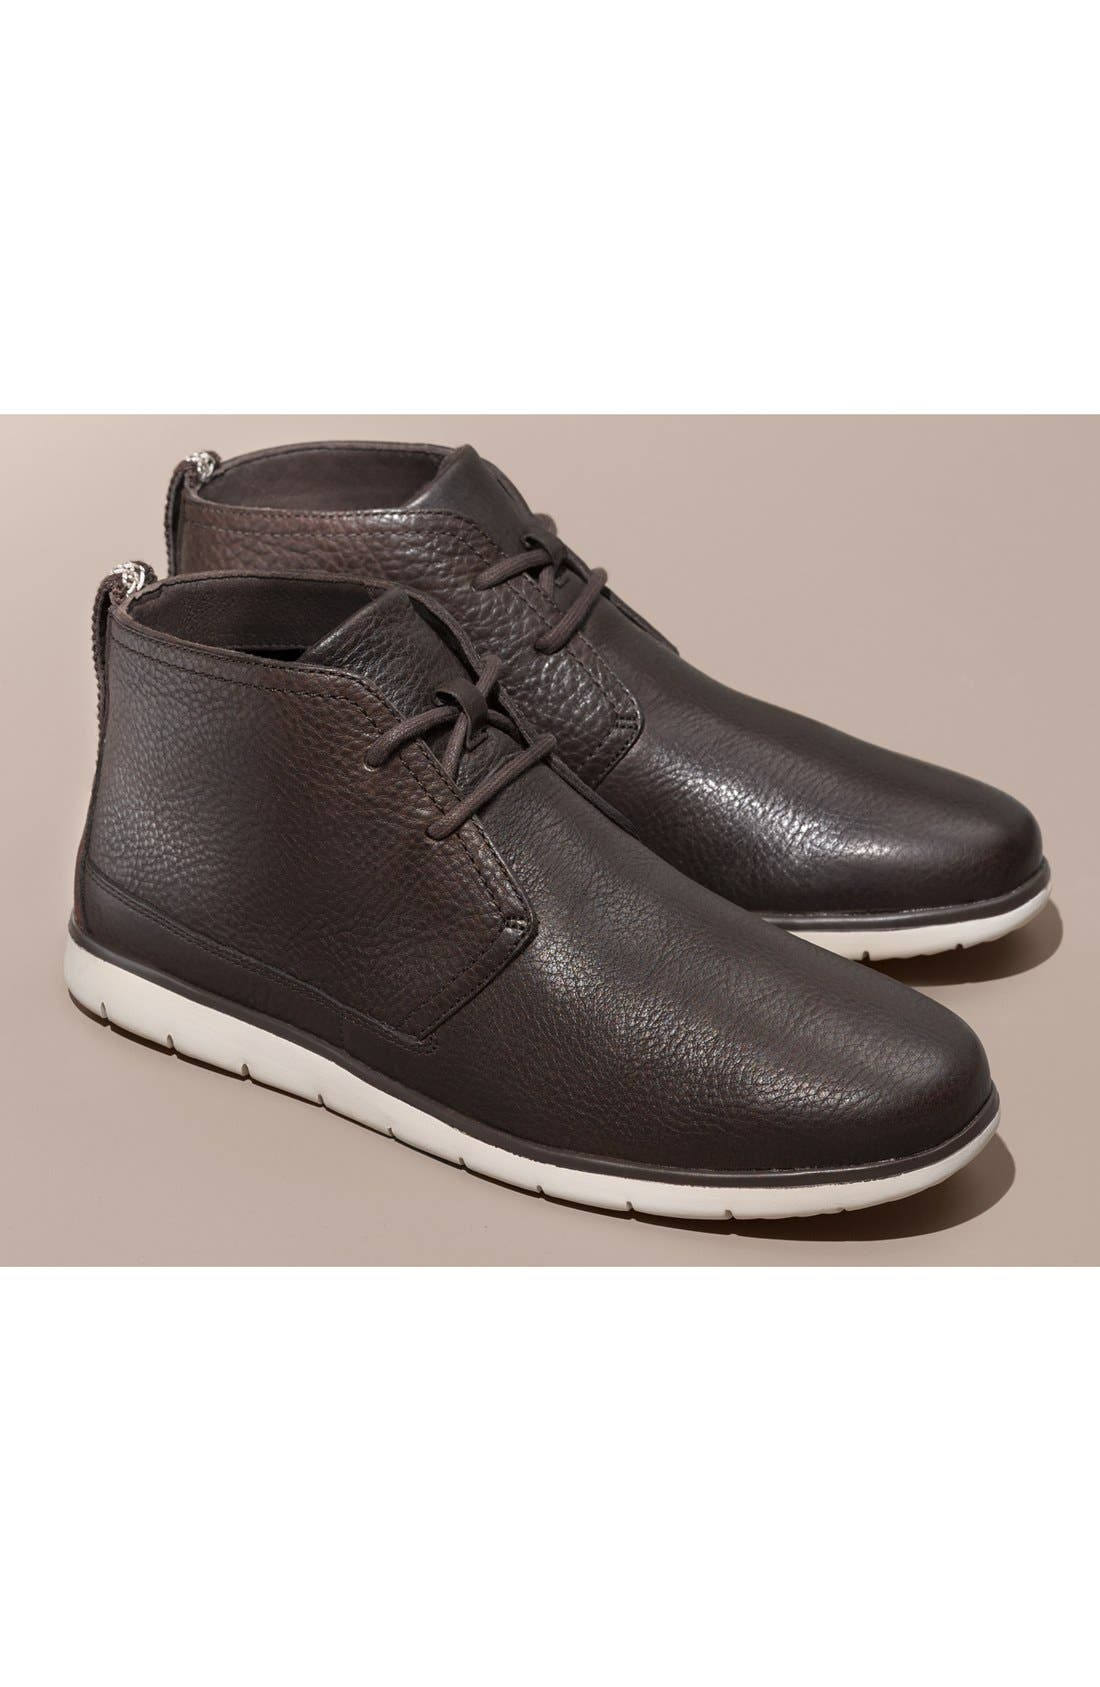 Freamon Chukka Boot,                             Alternate thumbnail 21, color,